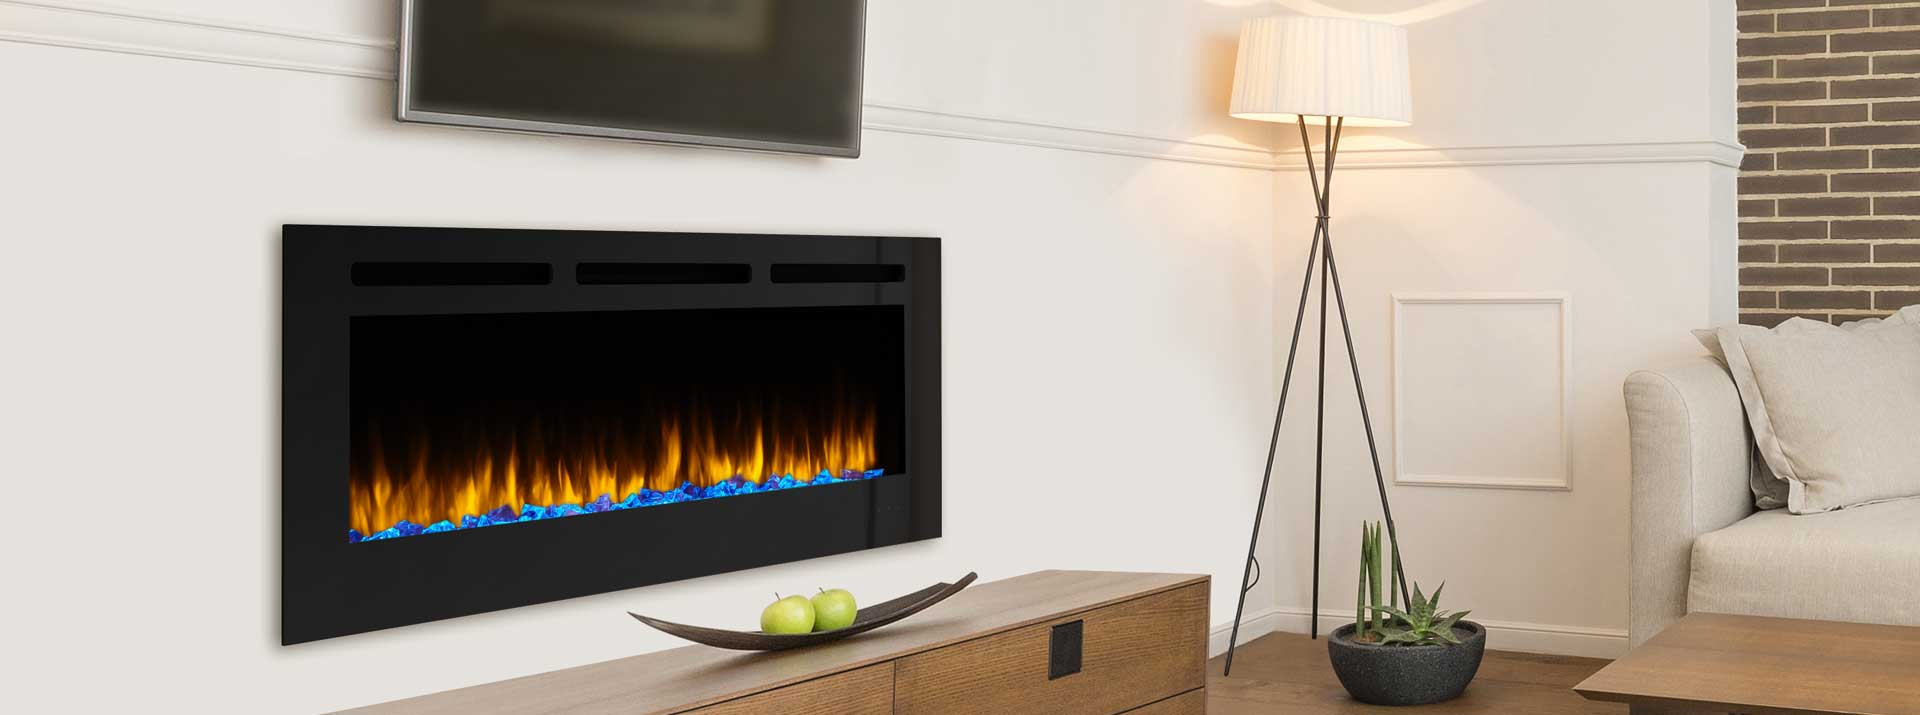 Simplifire Allusion Electric Fireplace Series Monessen